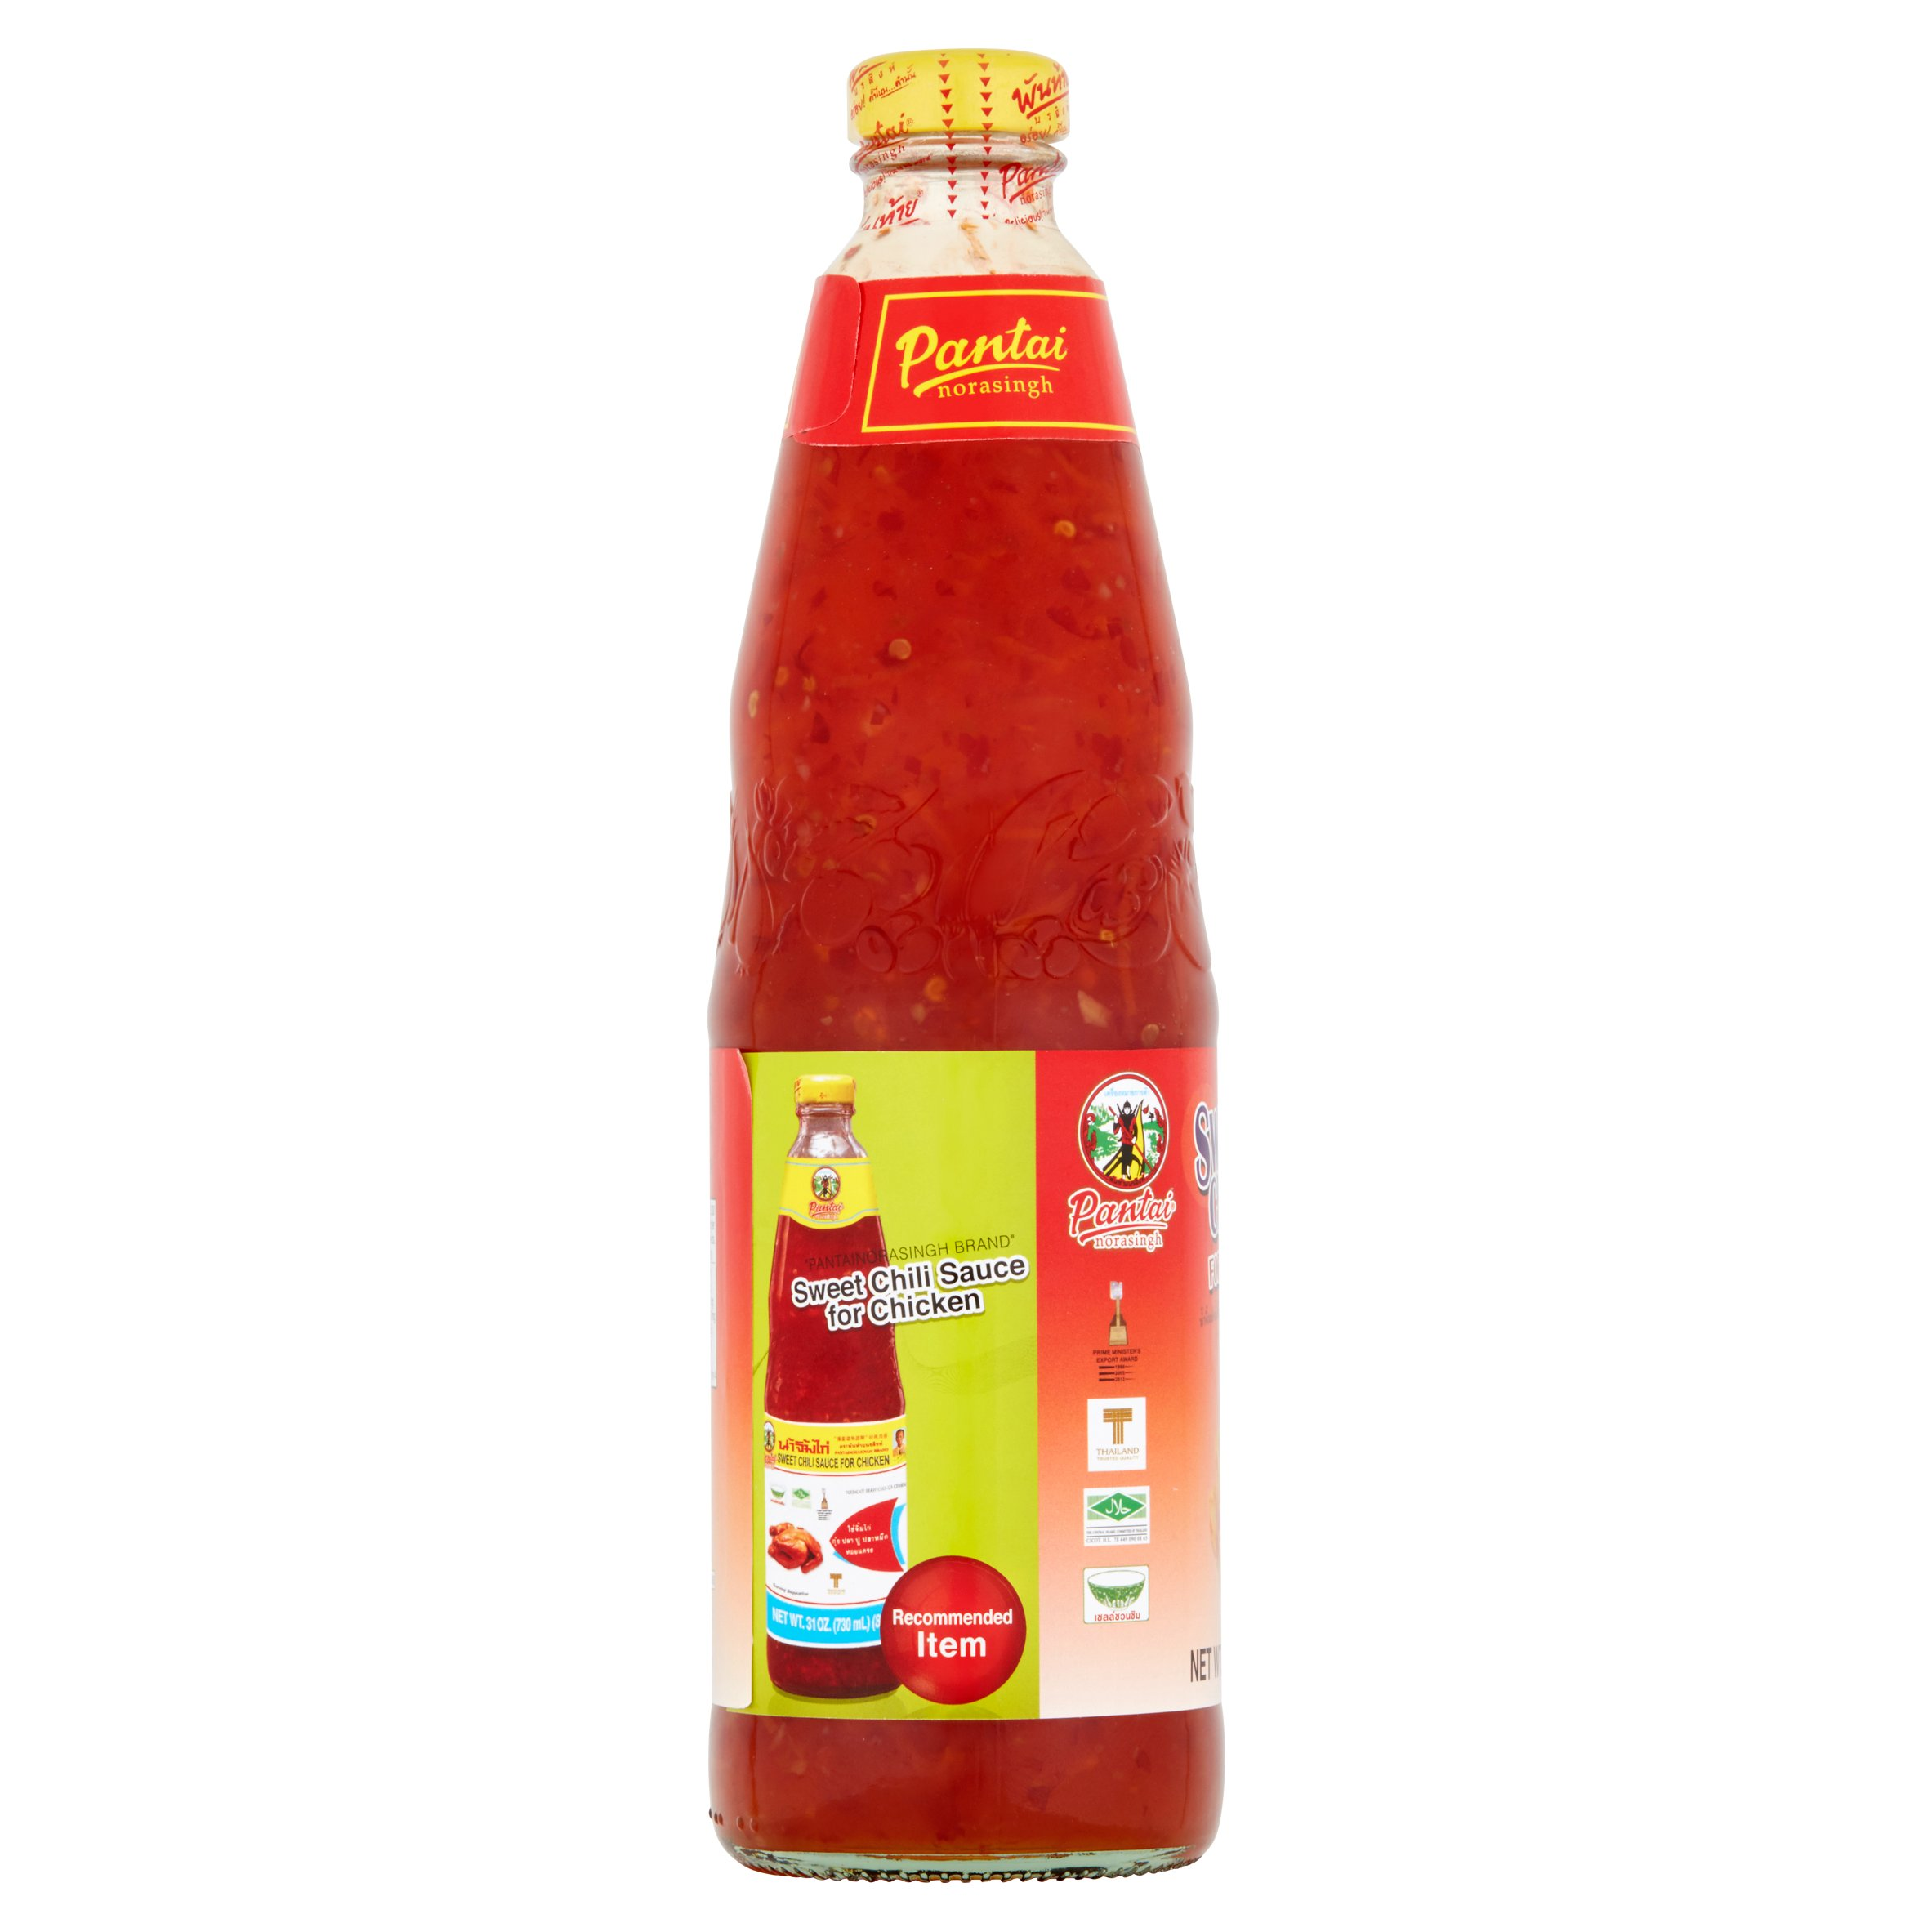 Chili Sauce Brands Del Monte Sweet Chilli 340 Ml Pantai Norasingh Sweetened For Spring Roll 2365x2365